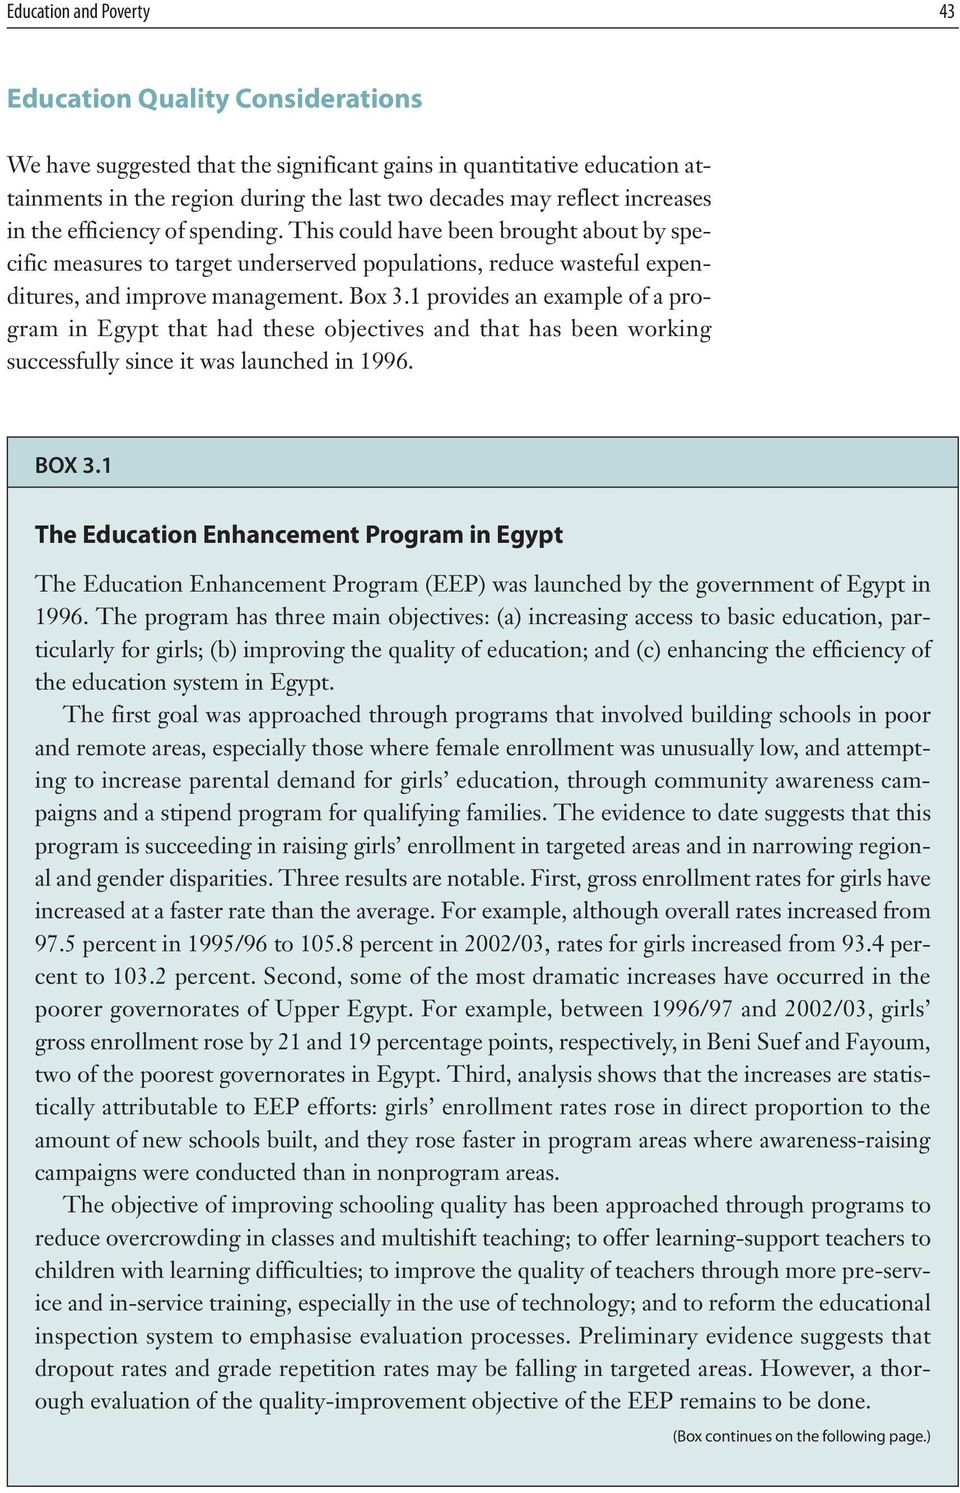 1 provides an example of a program in Egypt that had these objectives and that has been working successfully since it was launched in 1996. BOX 3.